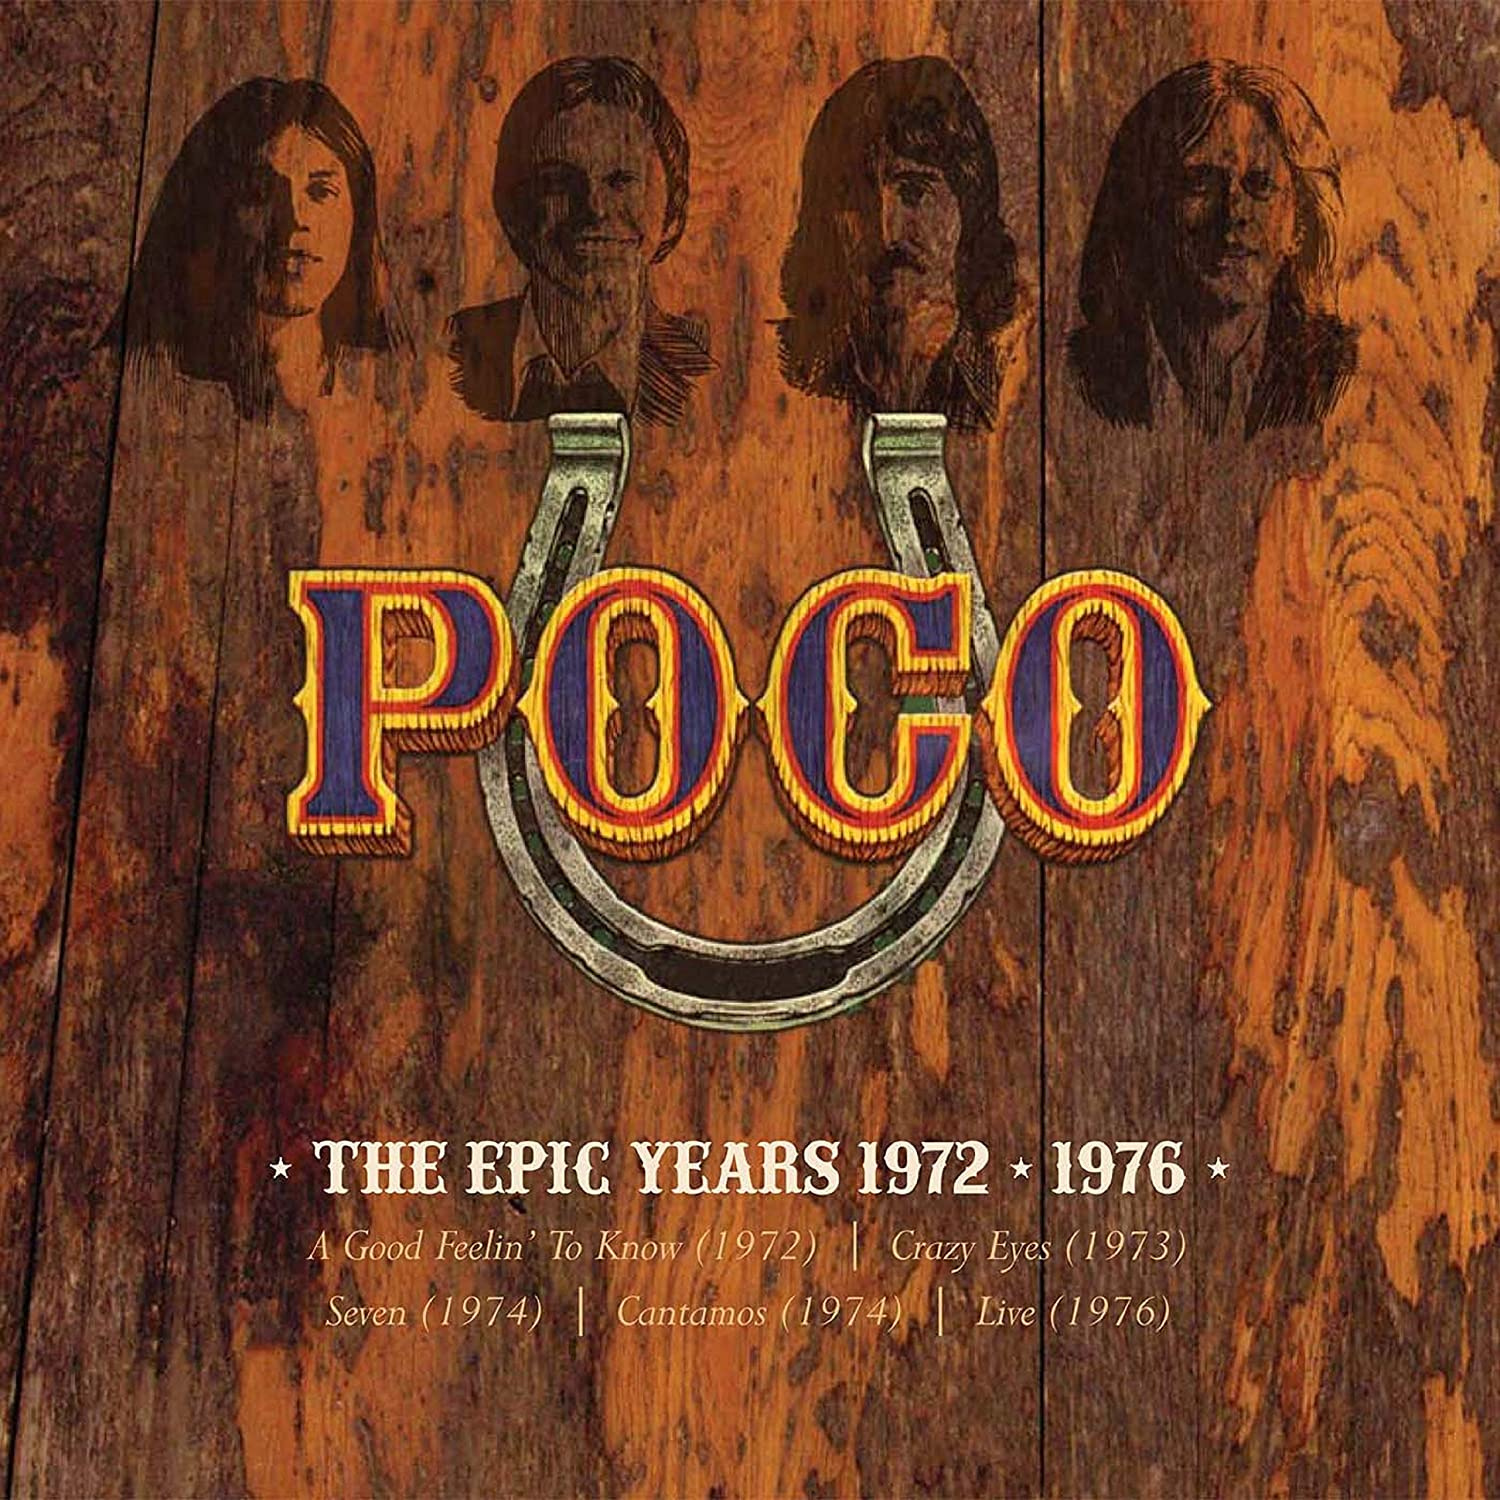 The Epic Years 1972-1976 (5CD Clamshell Boxset)